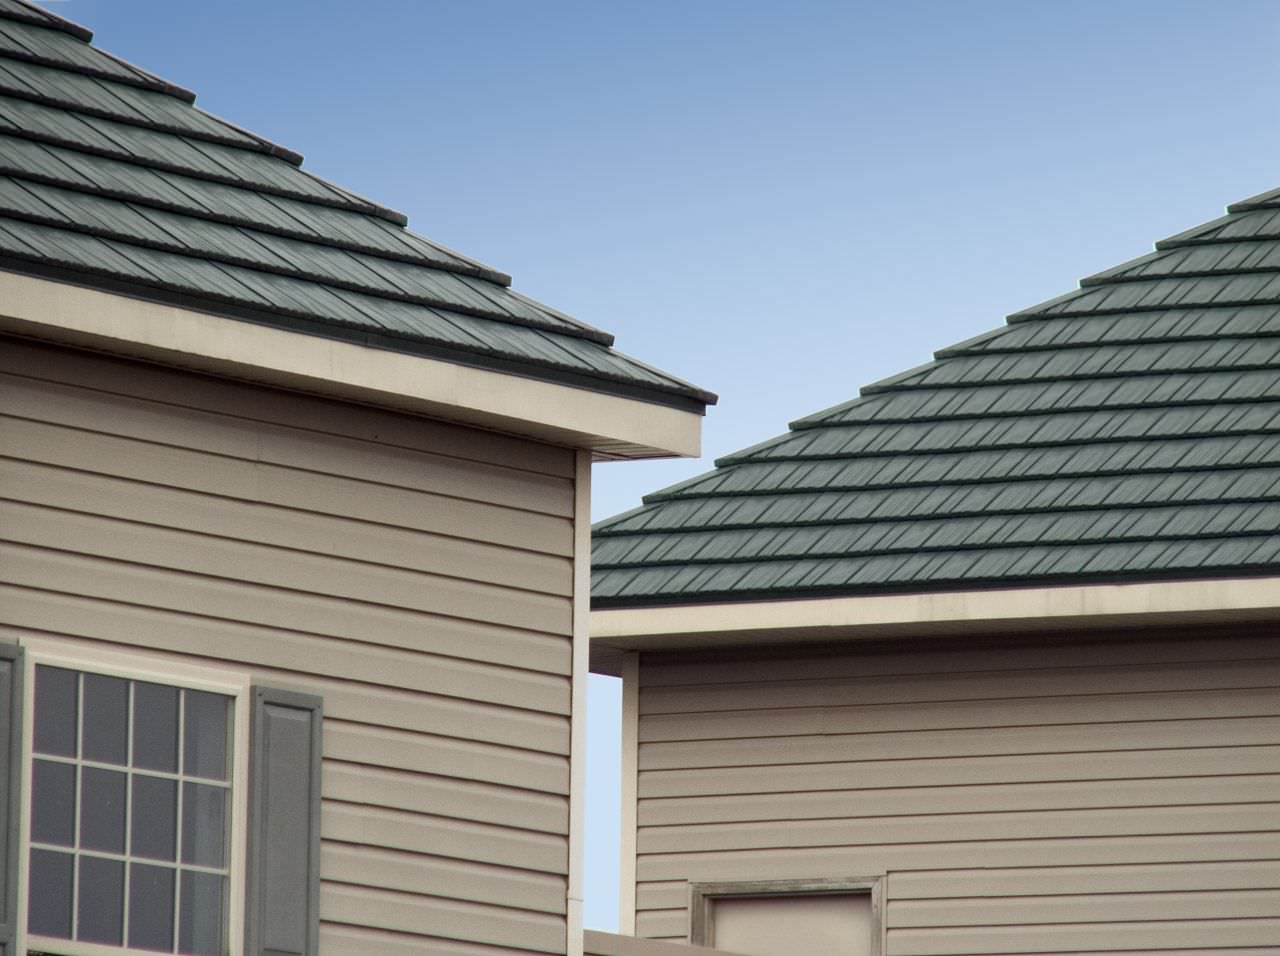 Construction Metal Products Inc Rustic Shingle Classic Metal Roofing Systems